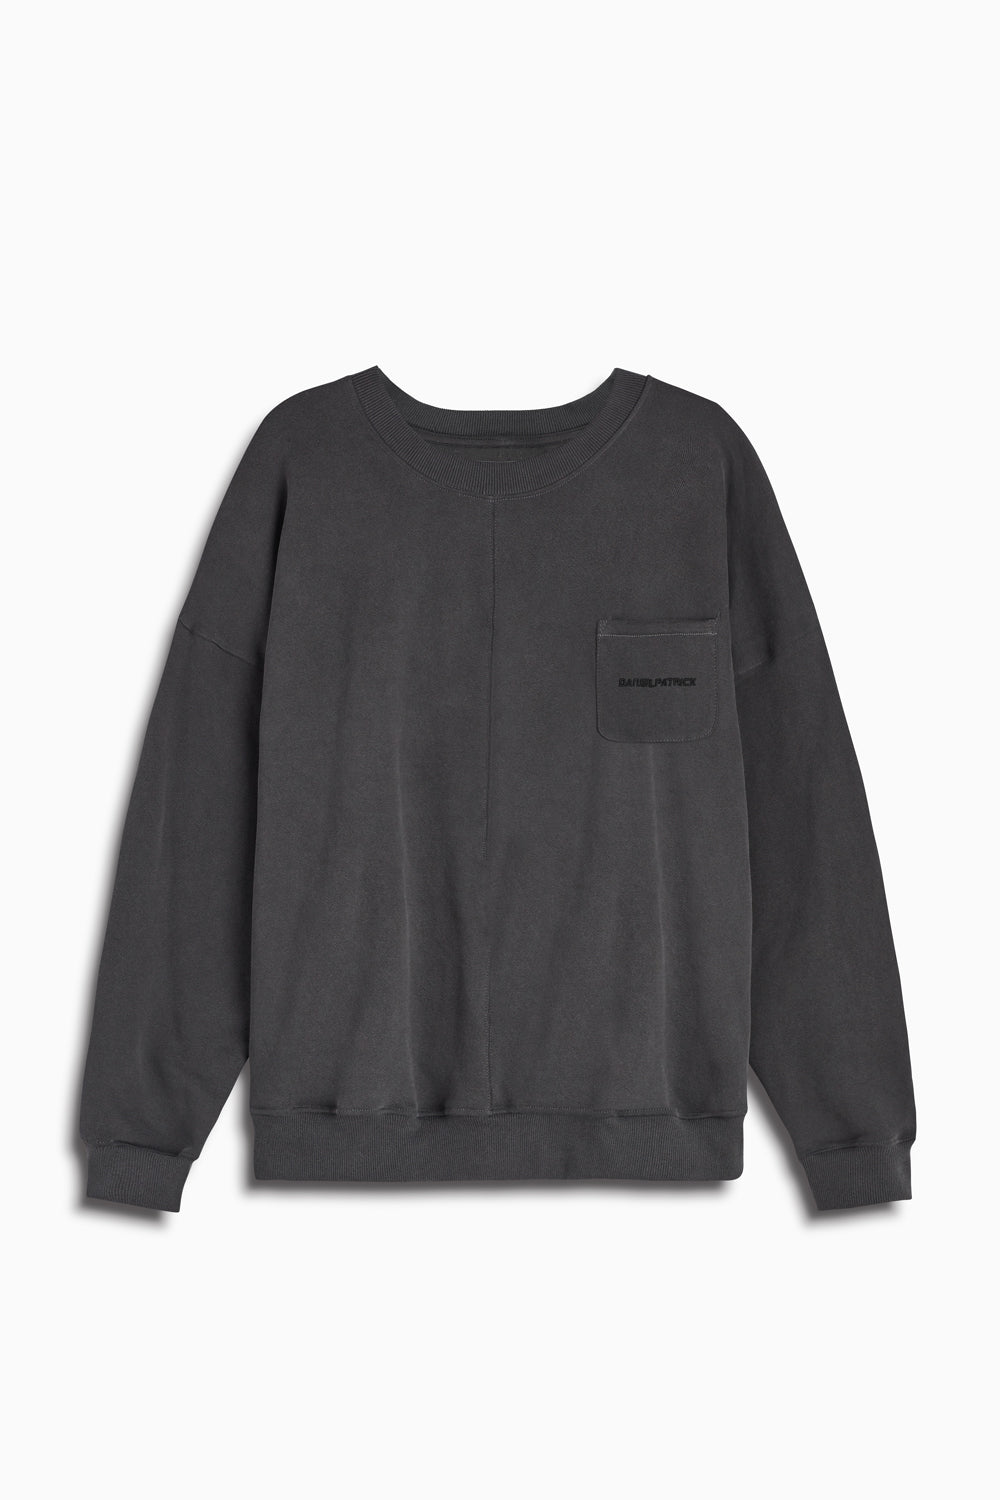 pocket crew sweat ii in vintage black/black by daniel patrick